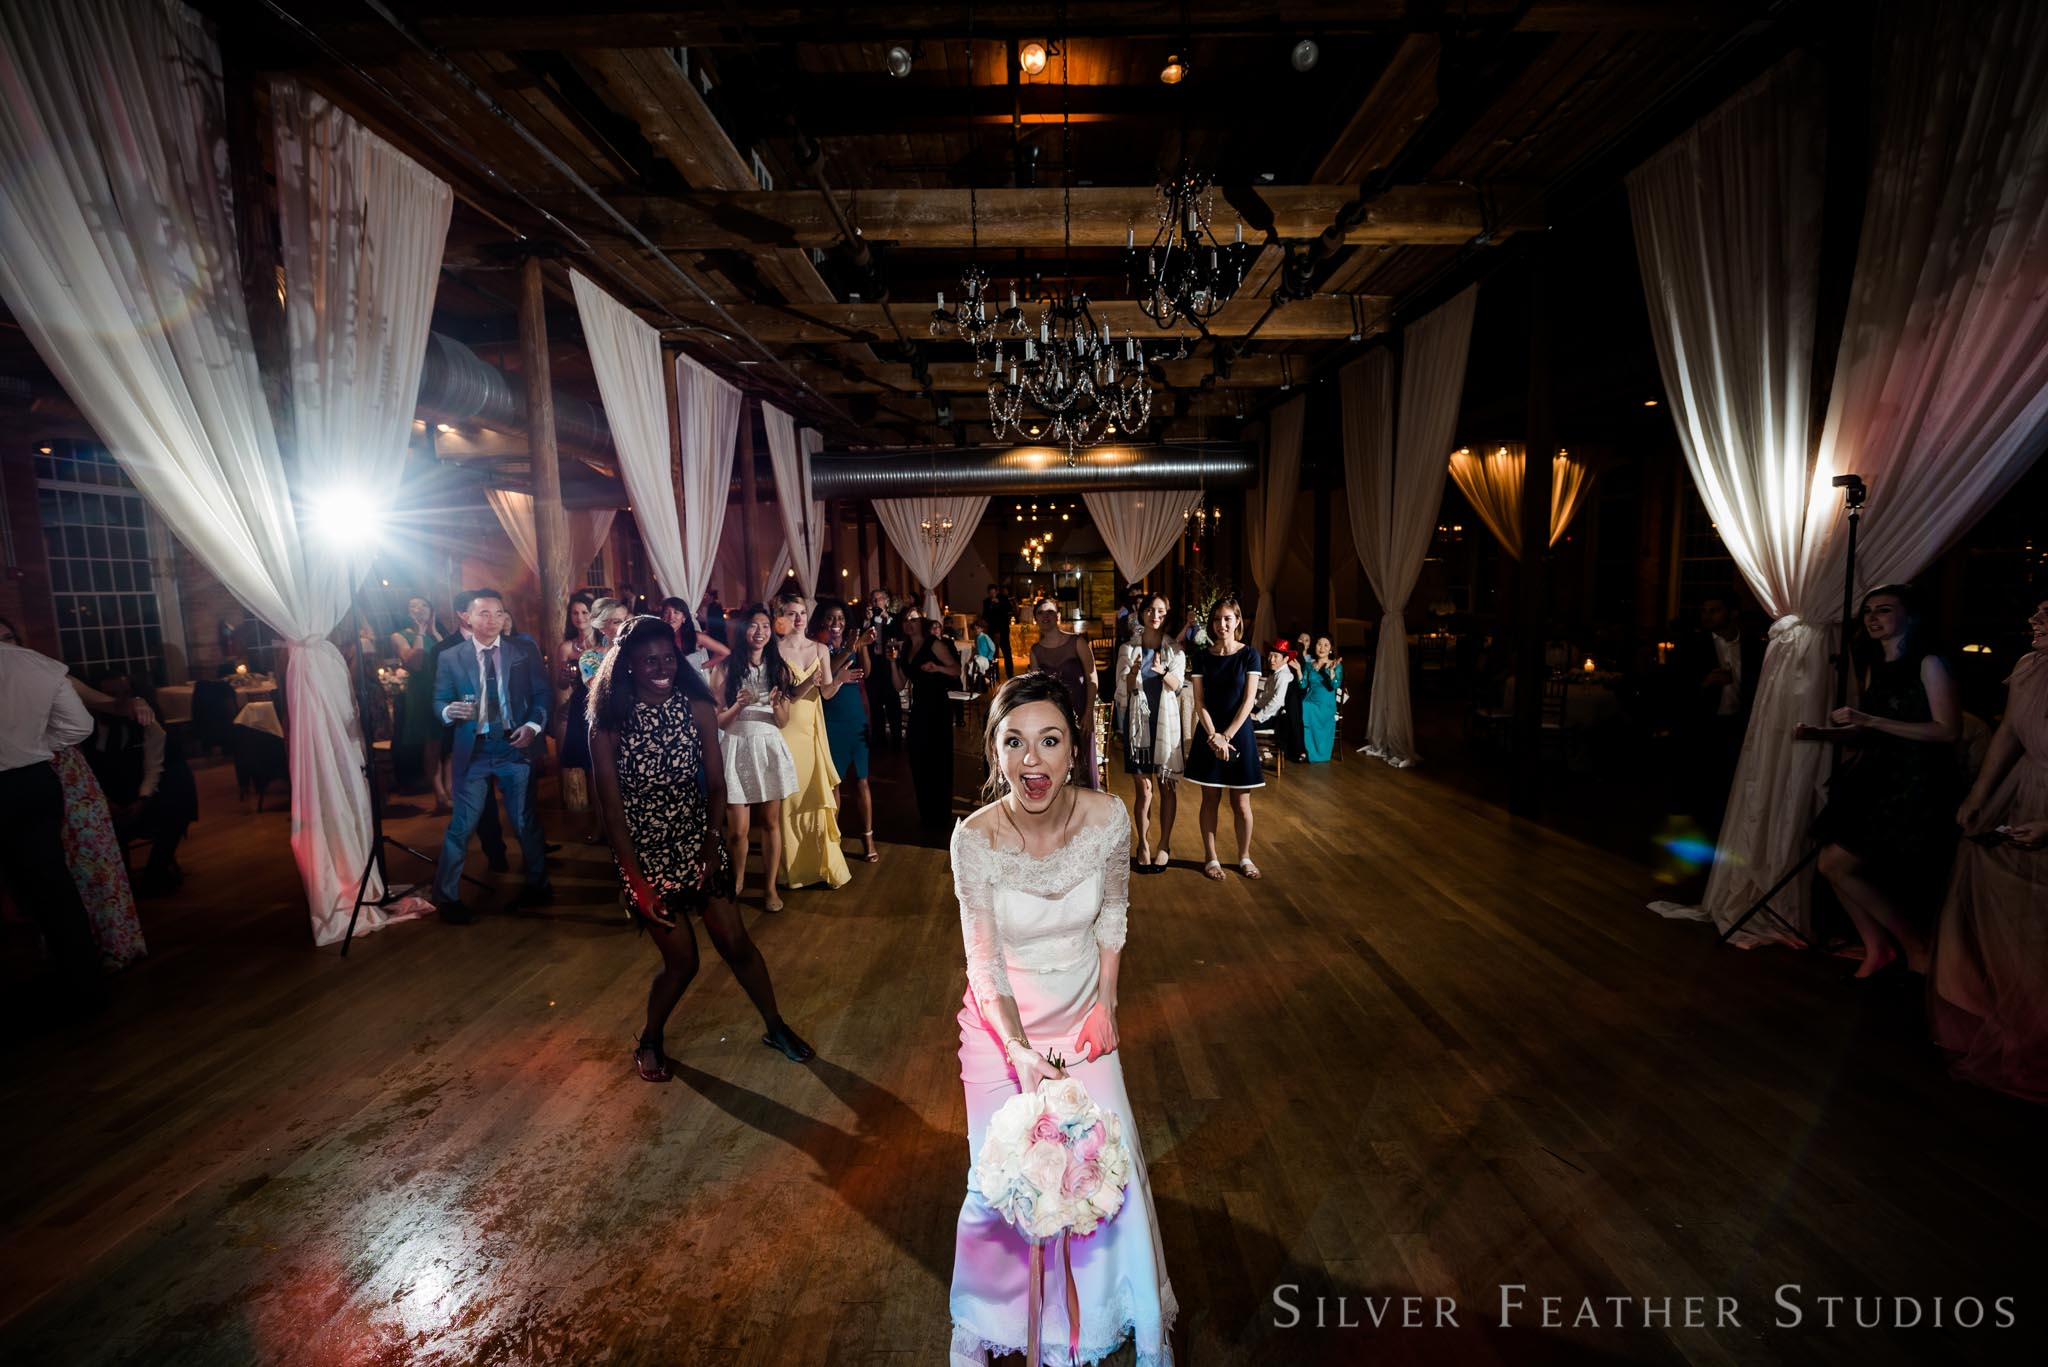 cotton-room-wedding-silver-feather-studios-058.jpg